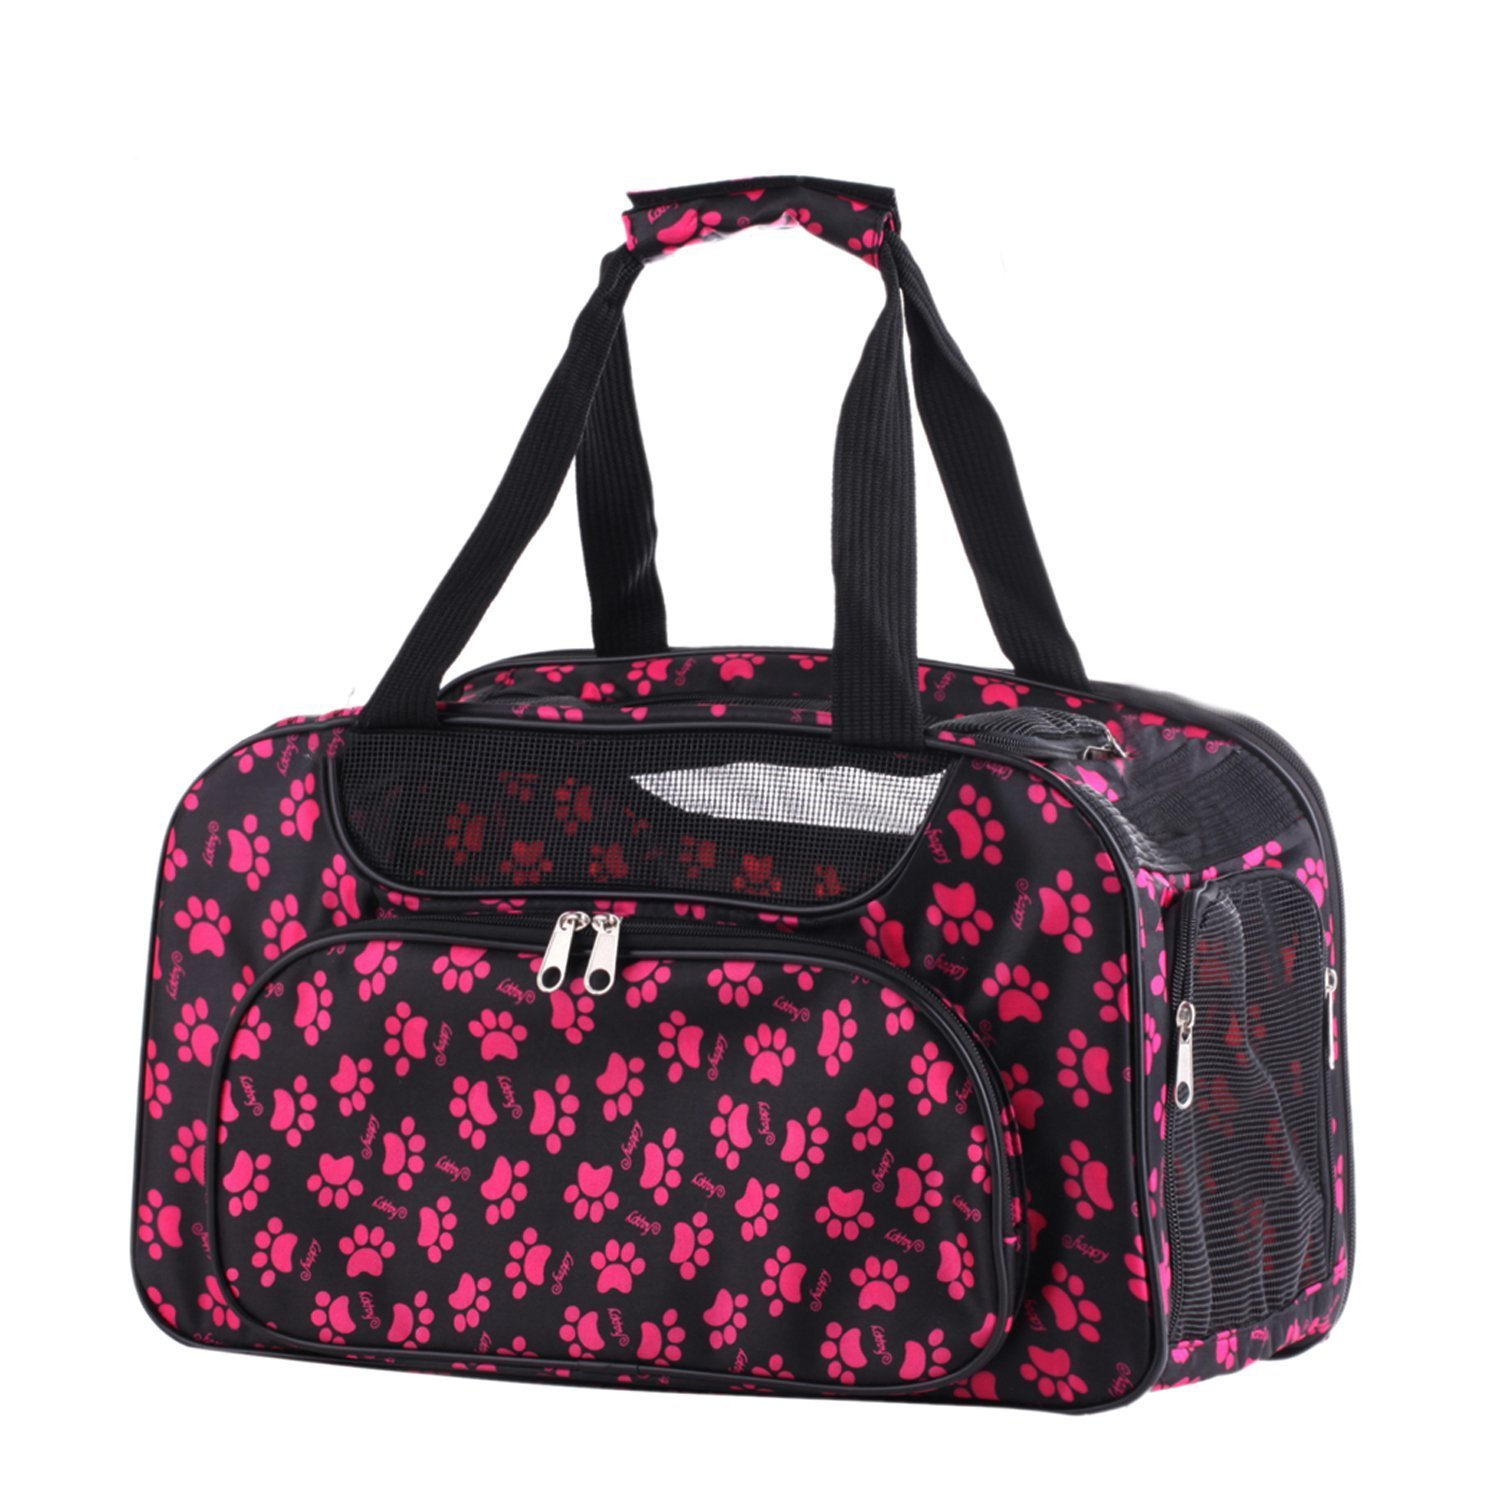 Pet Carrier Airline Approved Travel Bag Yorkie Vet Shihtzu Cat Kitten Cage Tote (Pink)